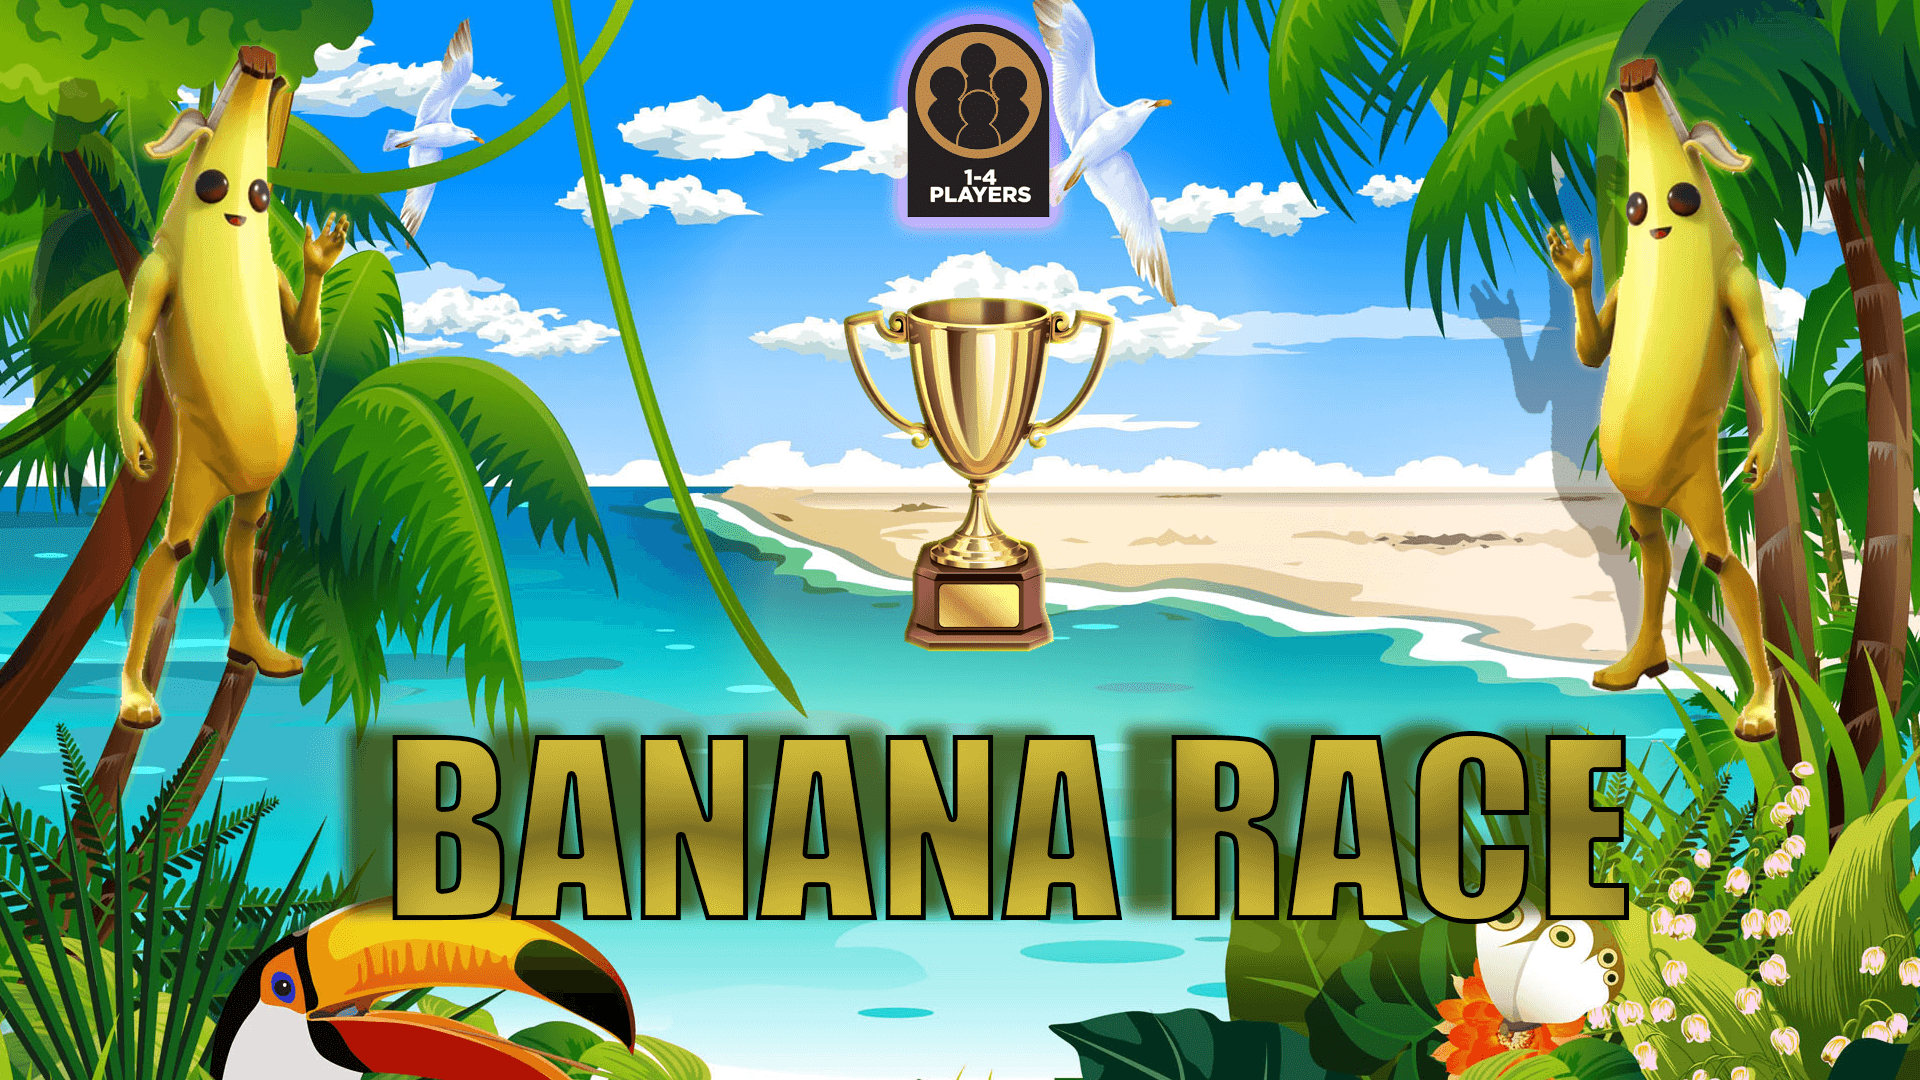 BANANA RACE (1-4 PLAYERS)